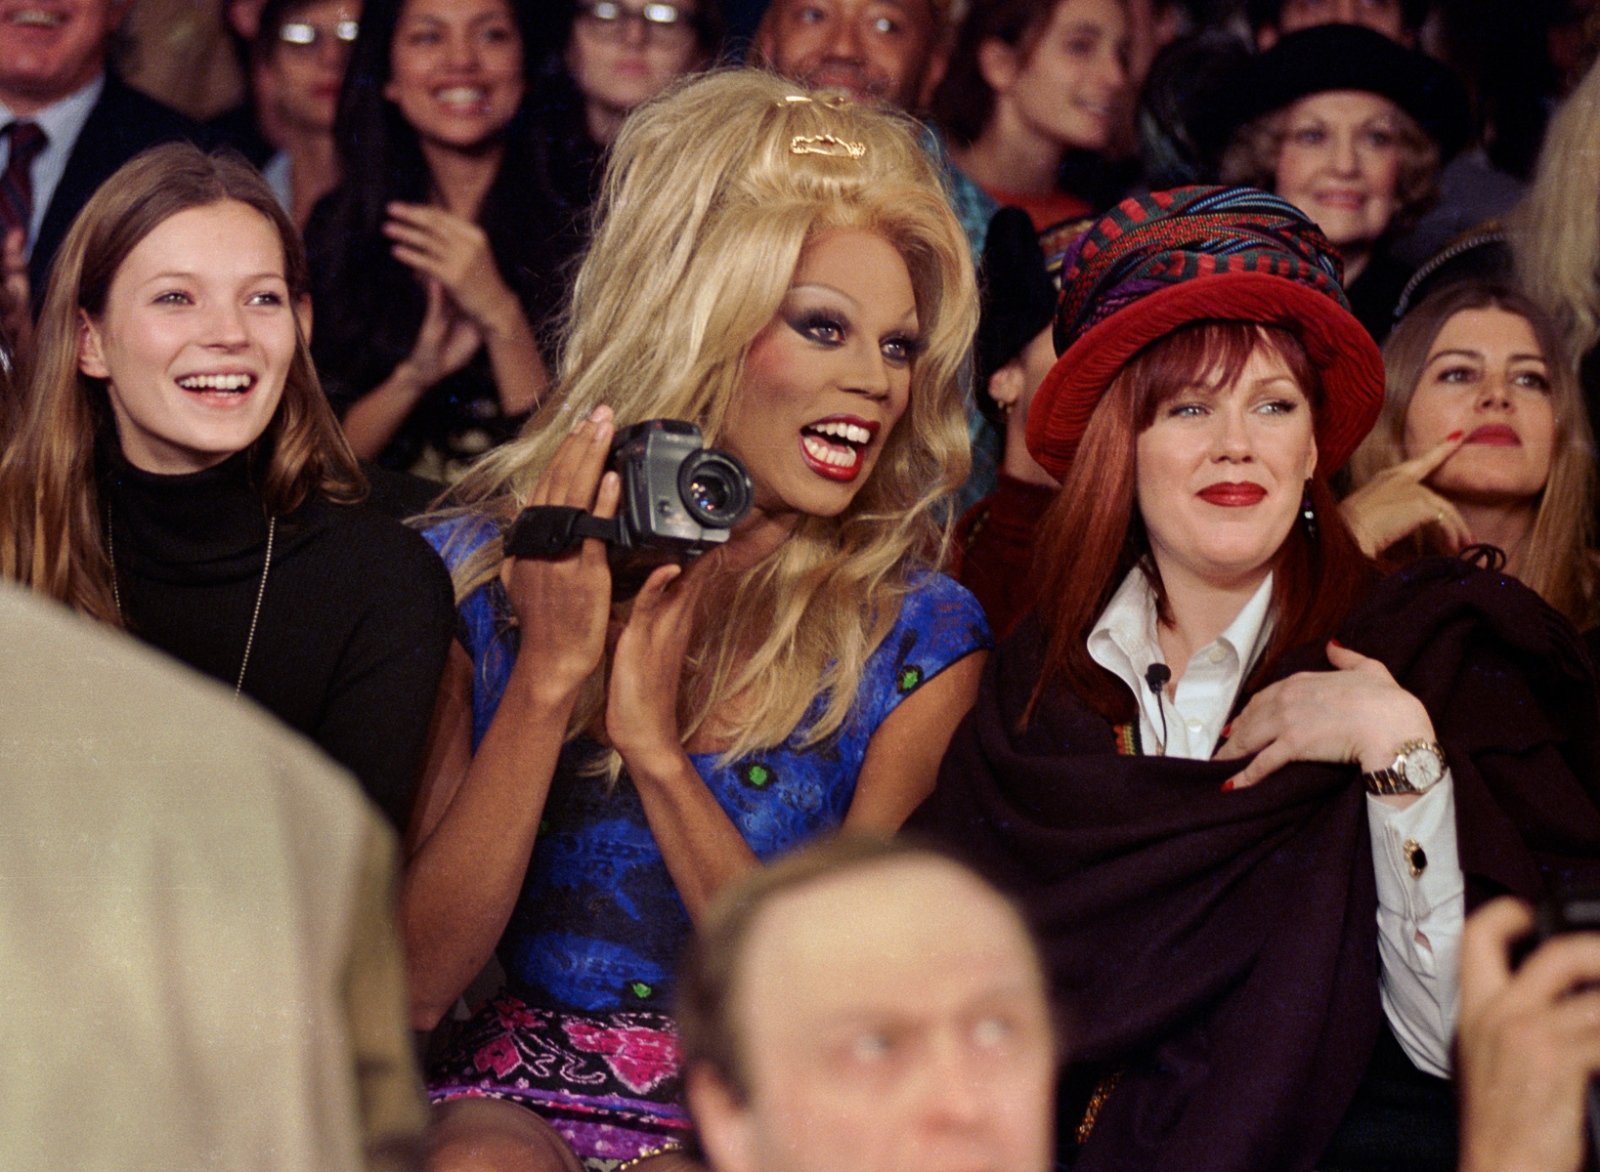 Kate Moss, RuPaul, and Tommy Boy's Monica Lynch. RuPaul stands out among drag queens because of her startling height, blonde wig, and fondness for designer clothes. She was once a regular at fashion shows but today is rarely seen at such events. Todd Oldham, fall '94.